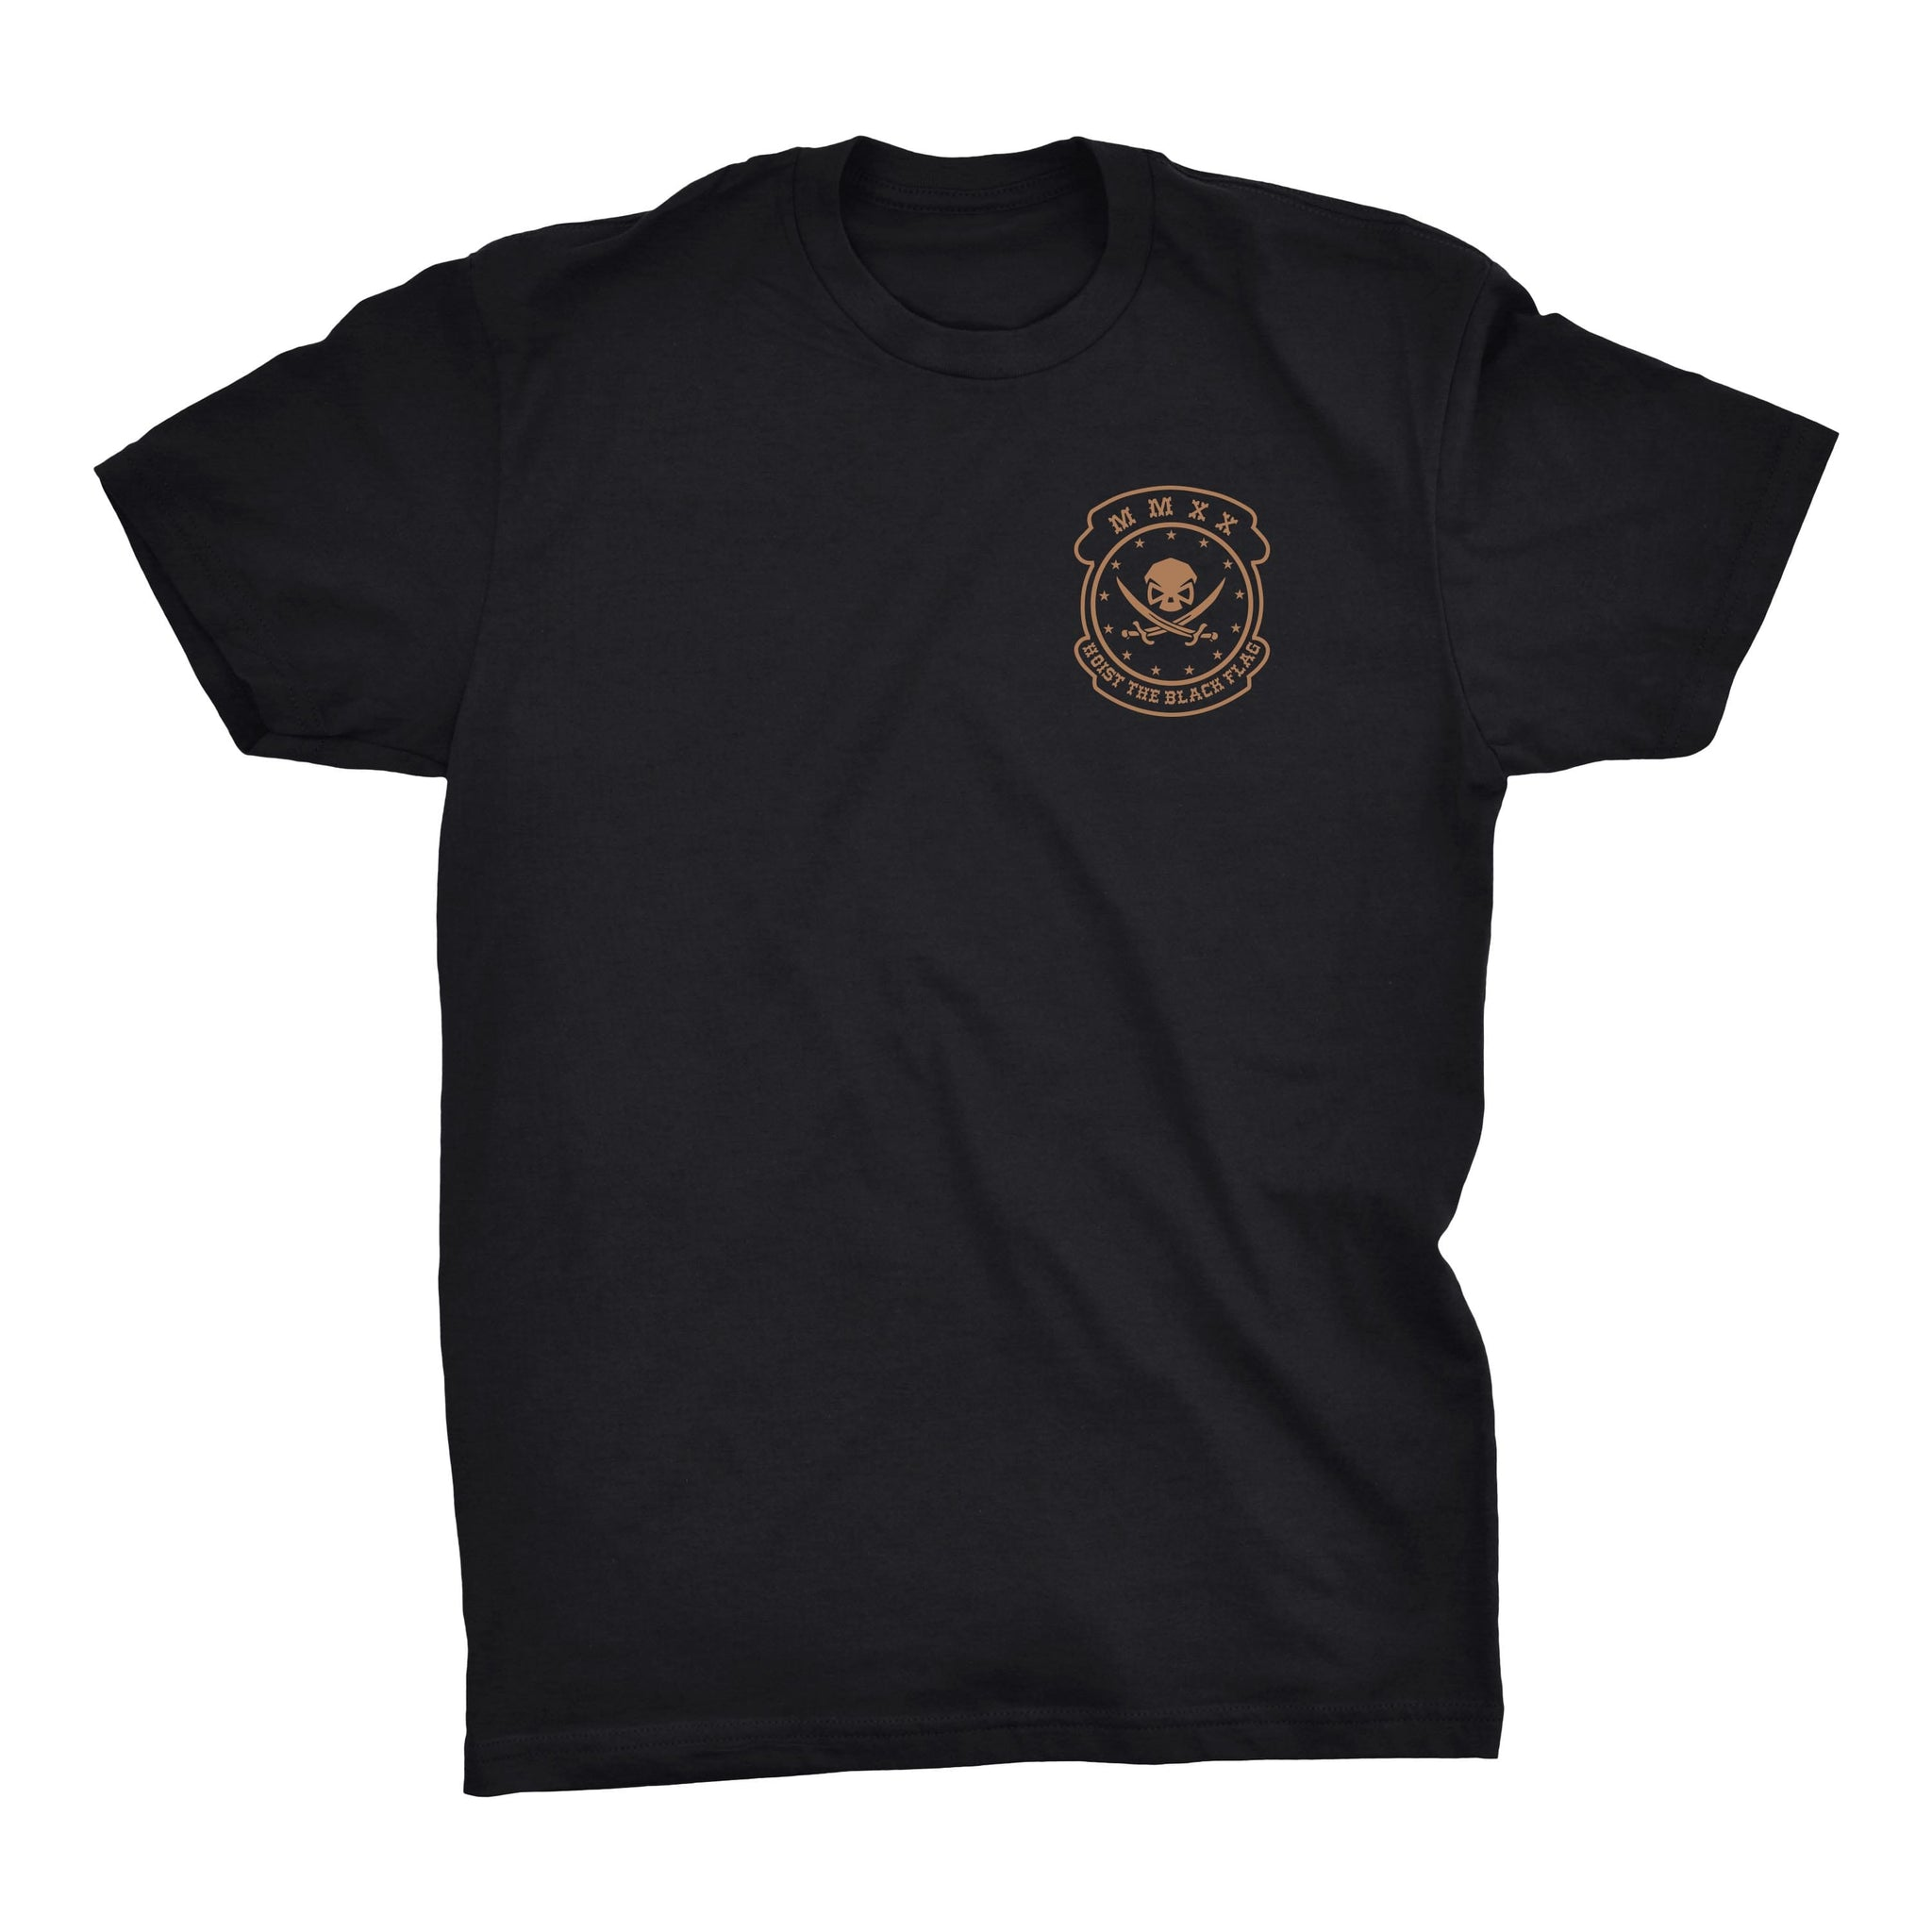 PHUMC Black Sails Chapter Tee - Black - T-Shirts - Pipe Hitters Union